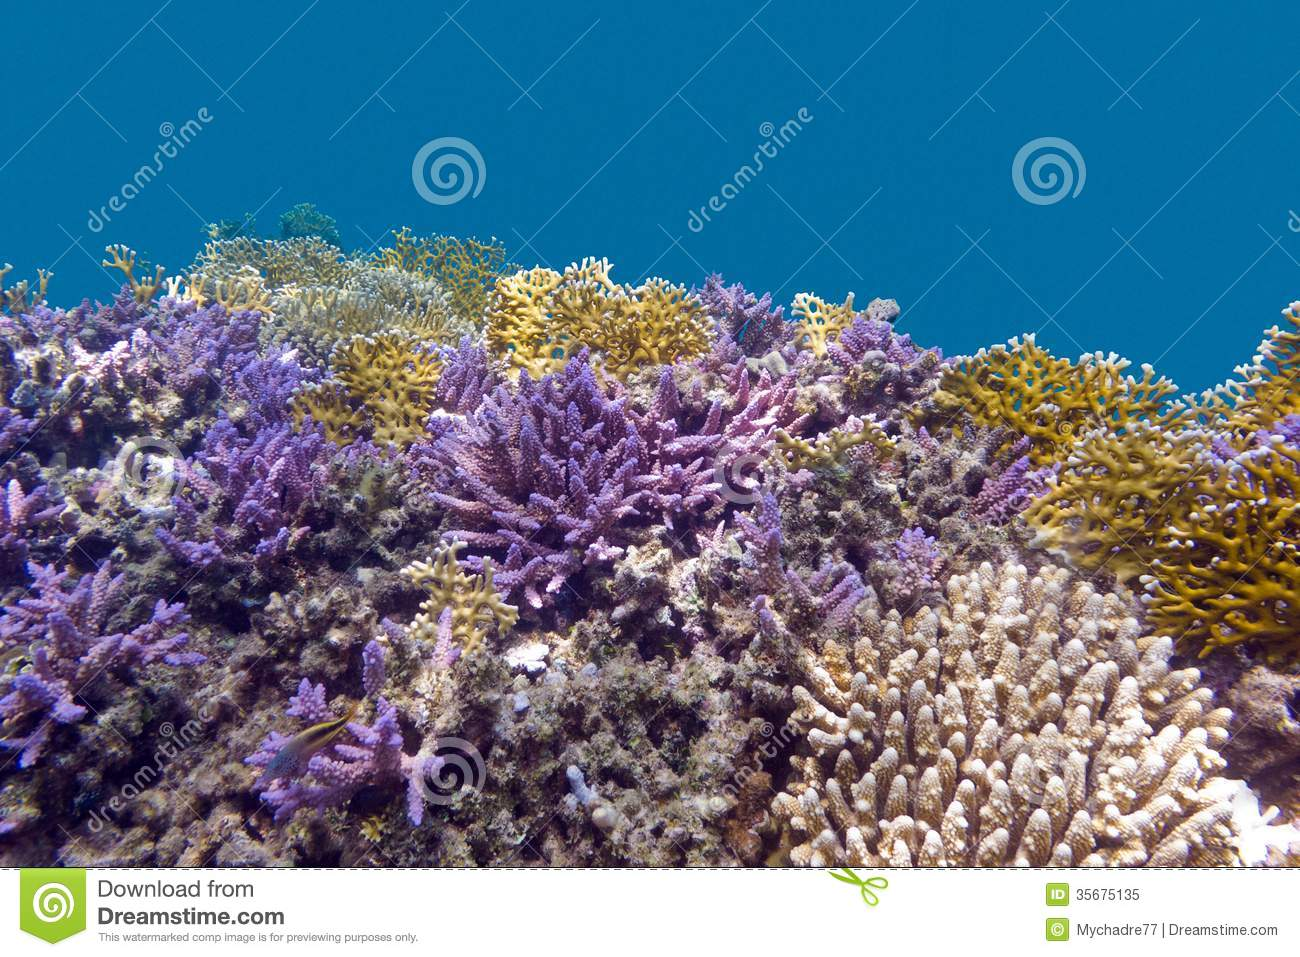 coral reel at the bottom of tropical sea with violet